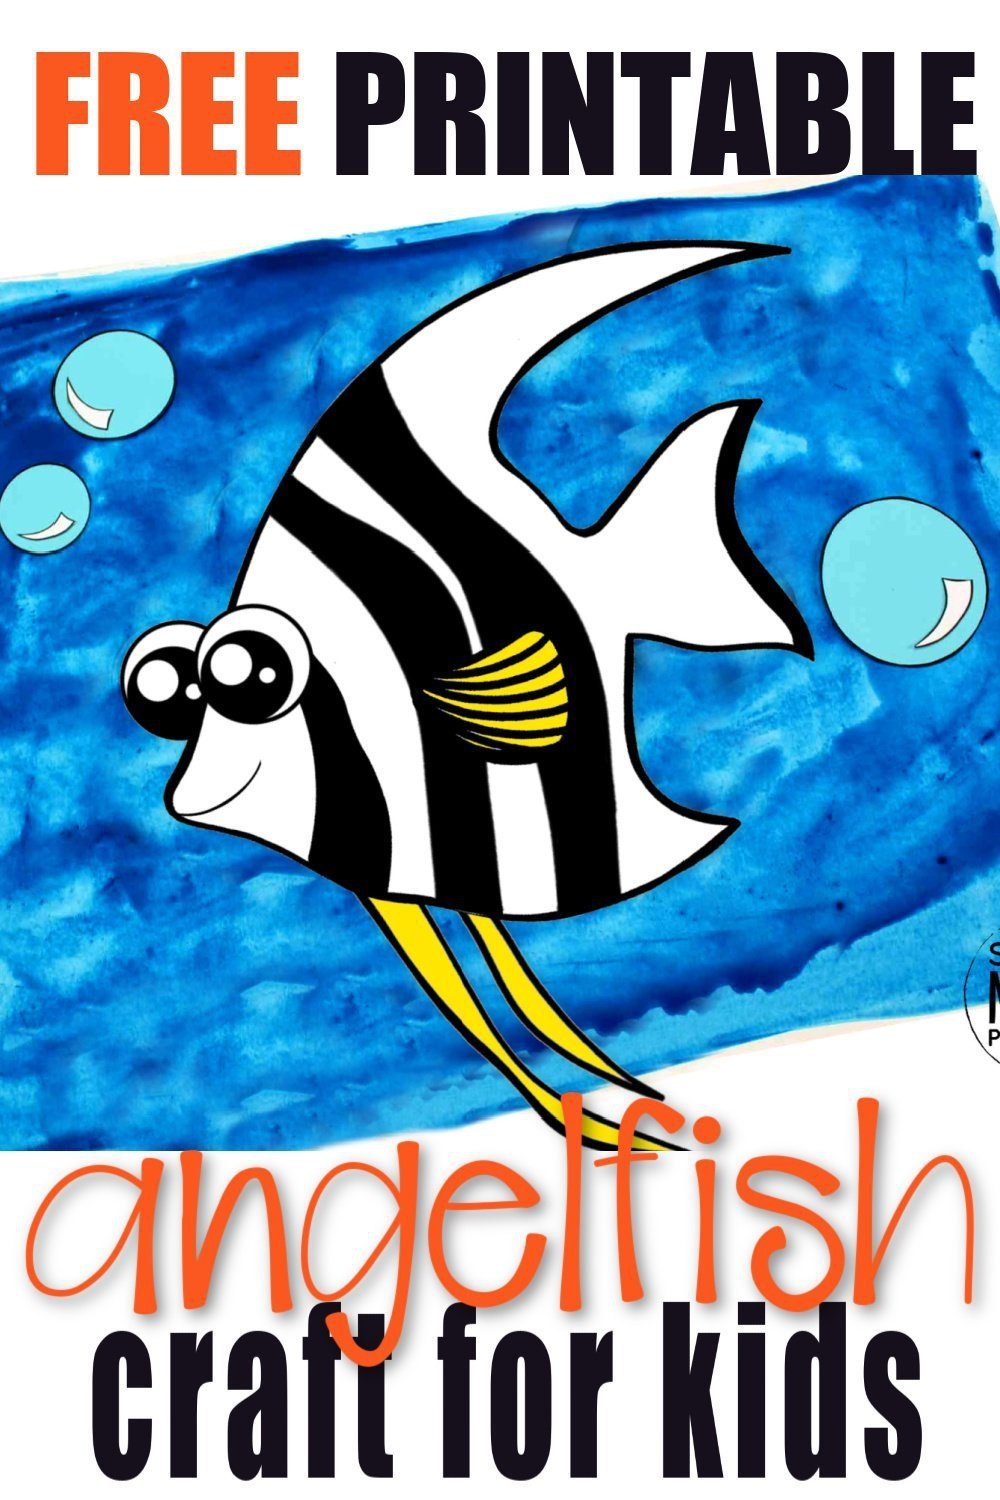 Free Printable Angel Fish Ocean Animal Craft for Kids, preschoolers and toddlers 1